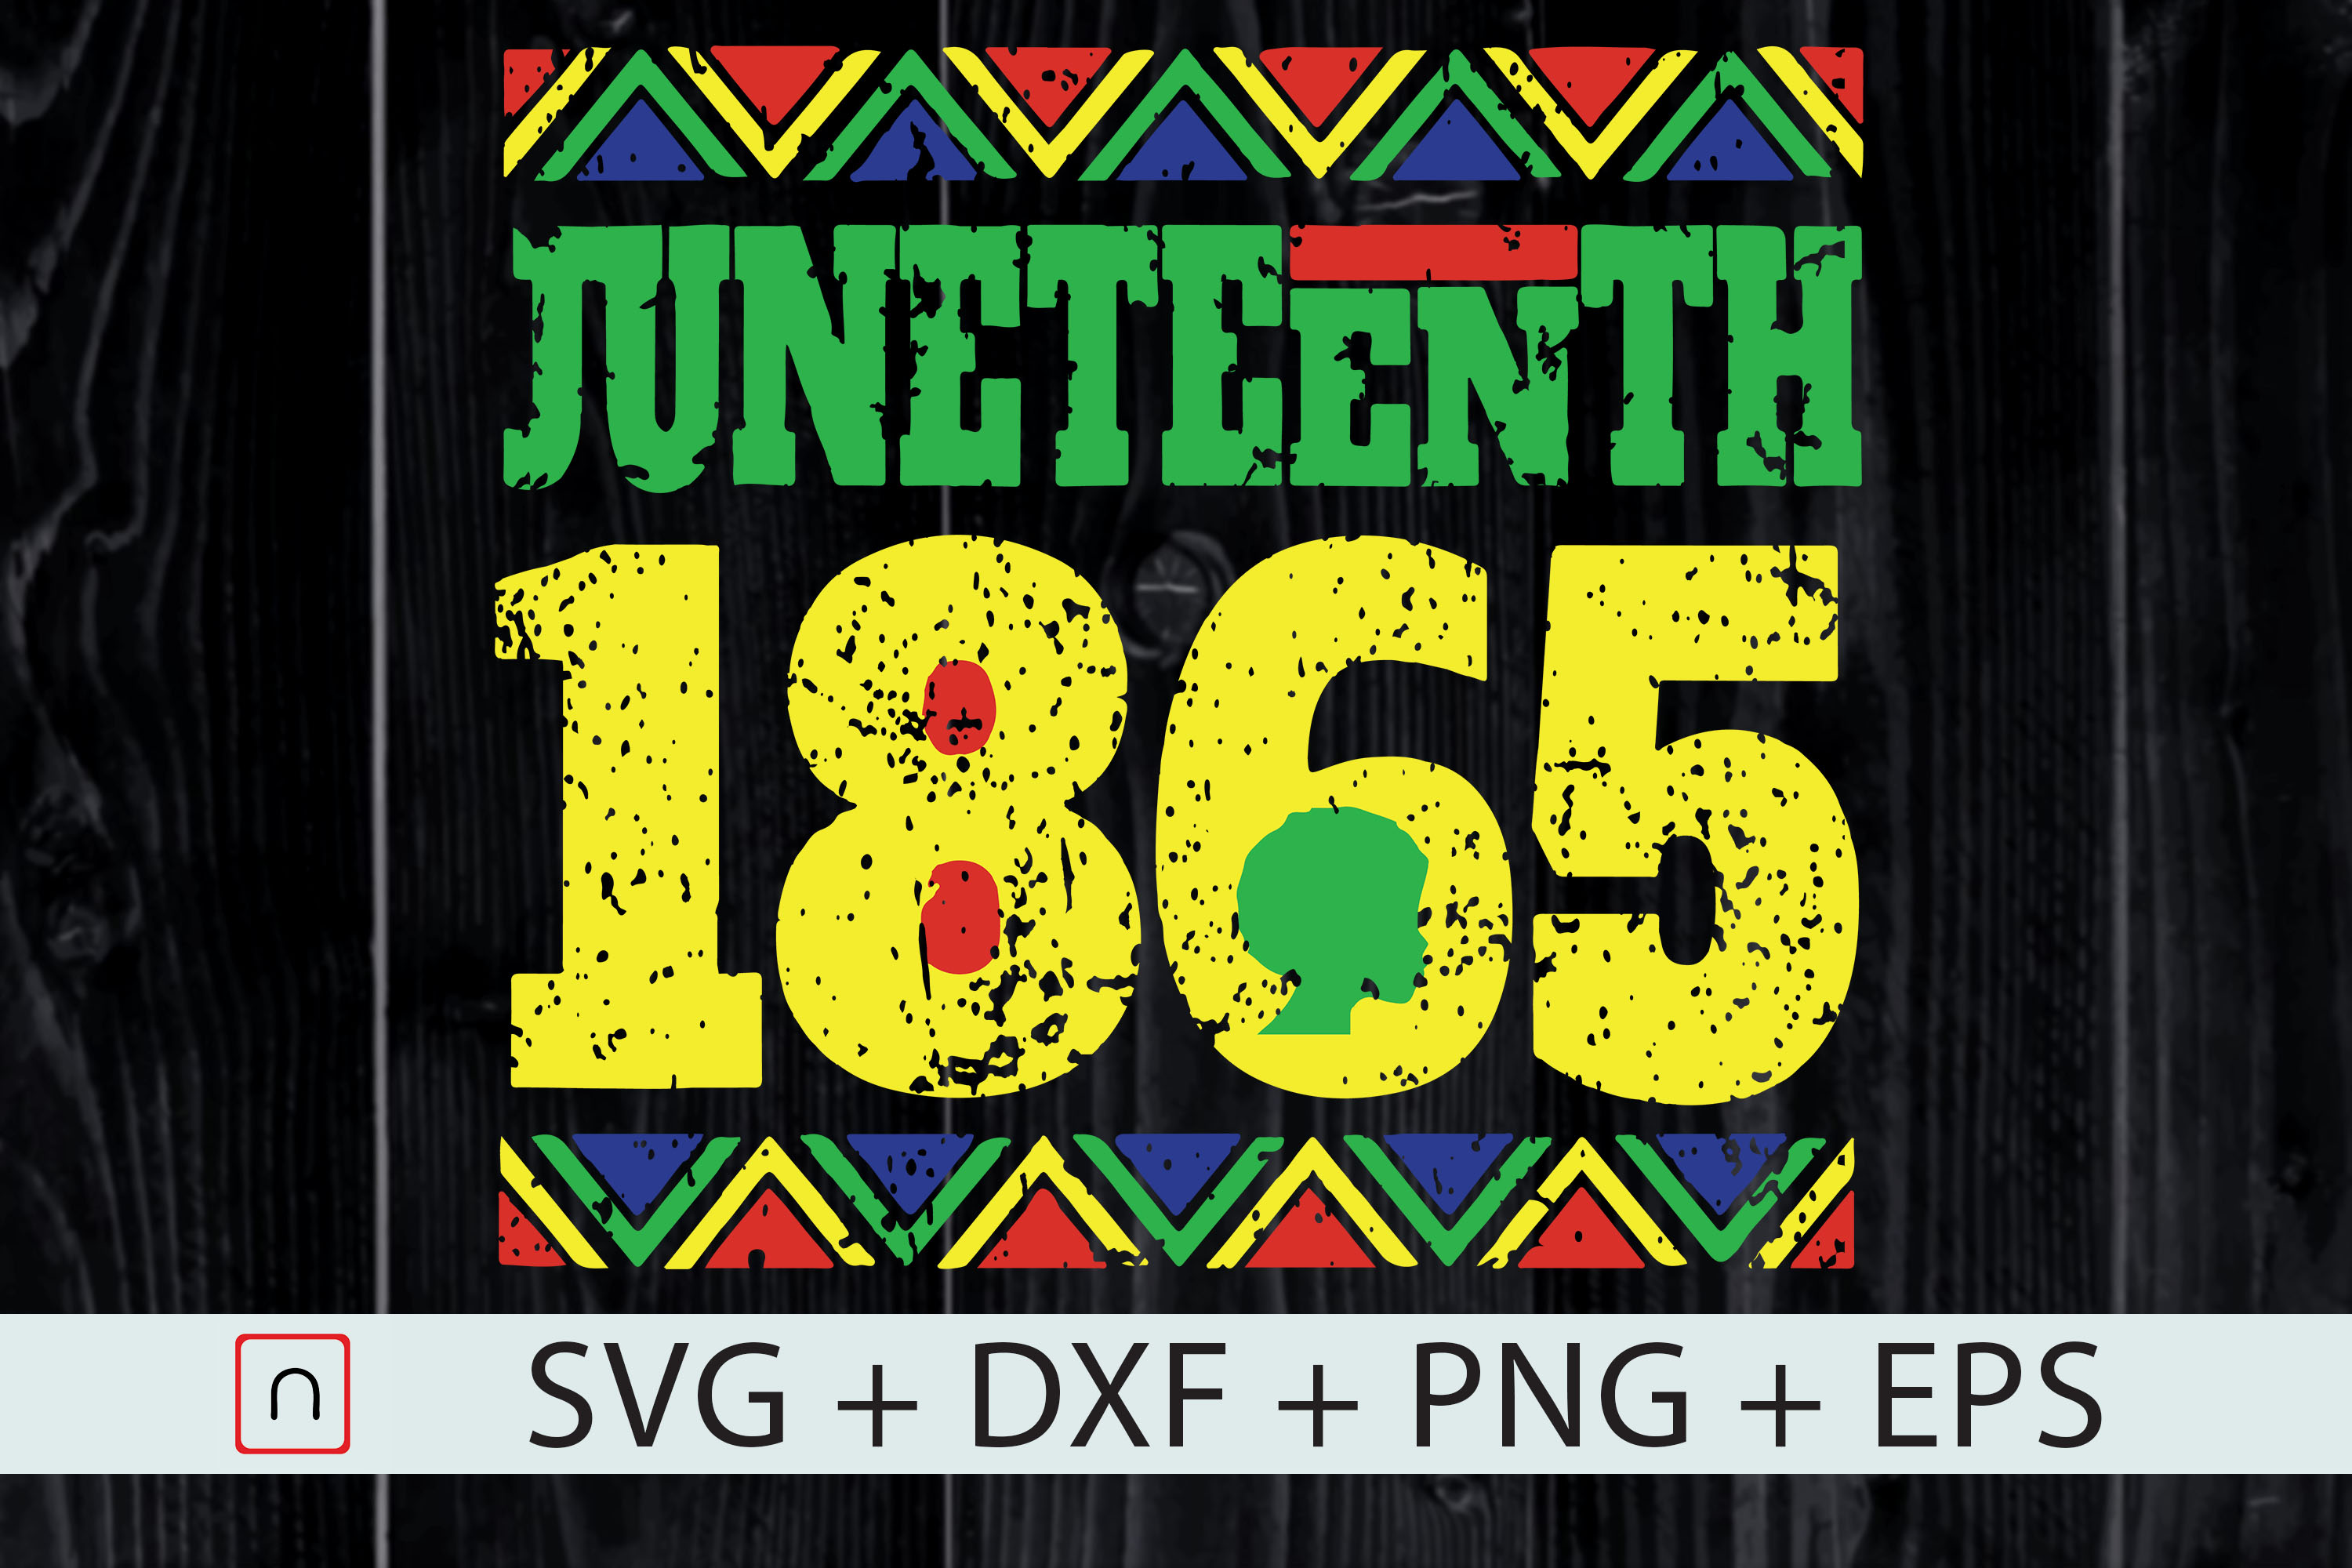 Download Free Juneteenth 1865 Anti 4th Of July Graphic By Novalia Creative for Cricut Explore, Silhouette and other cutting machines.